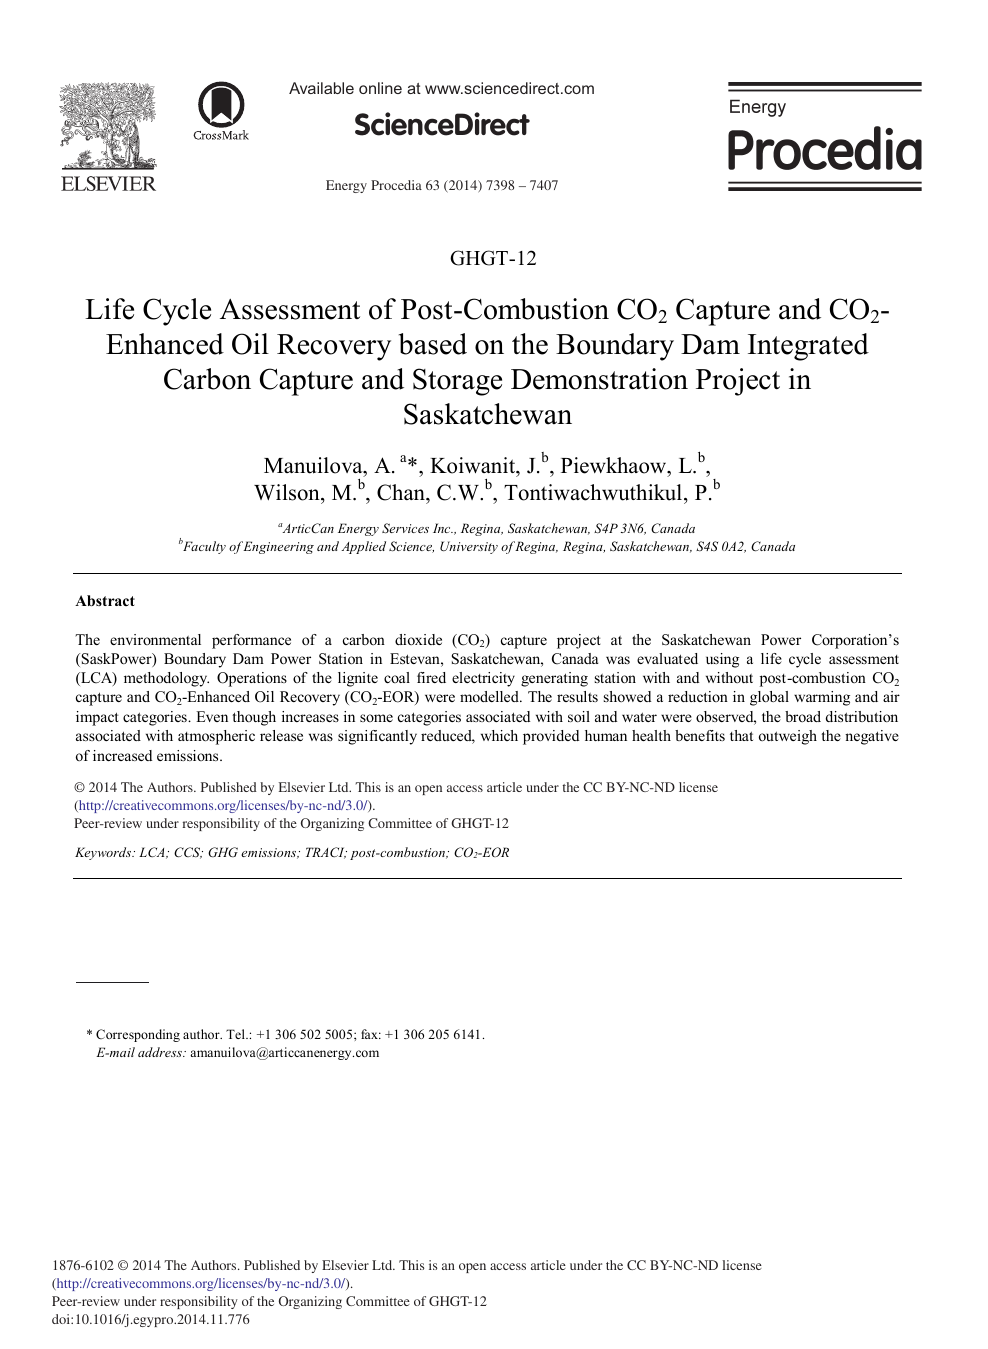 Life Cycle Assessment of Post-combustion CO2 Capture and CO2